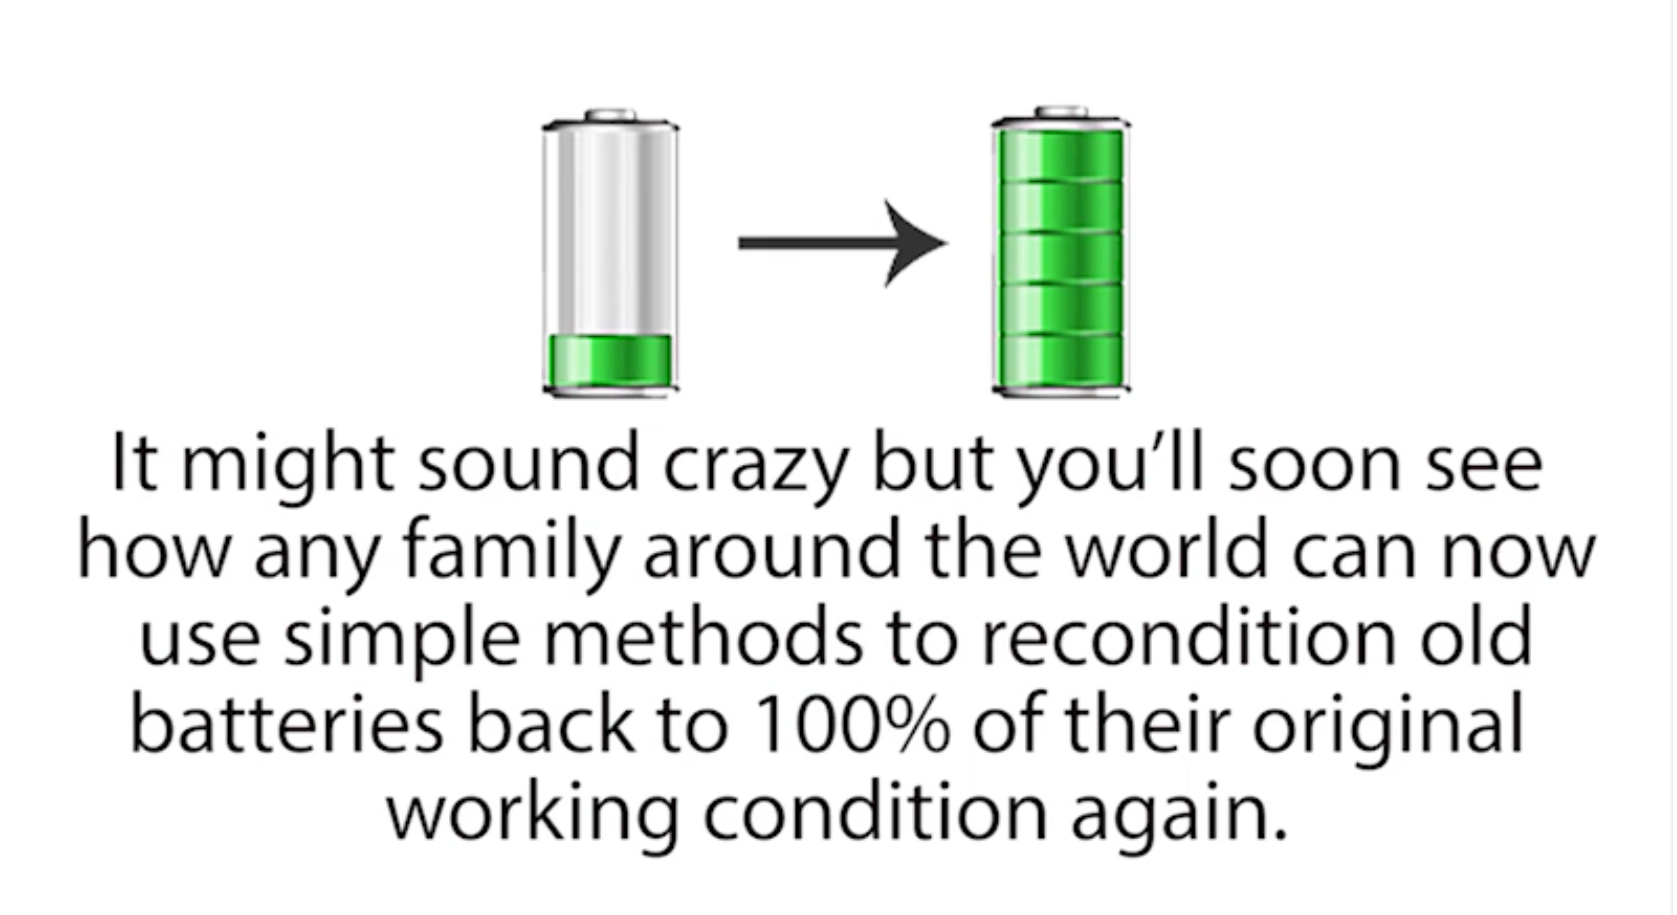 People around the world are using this simple methods to recondition batteries at home